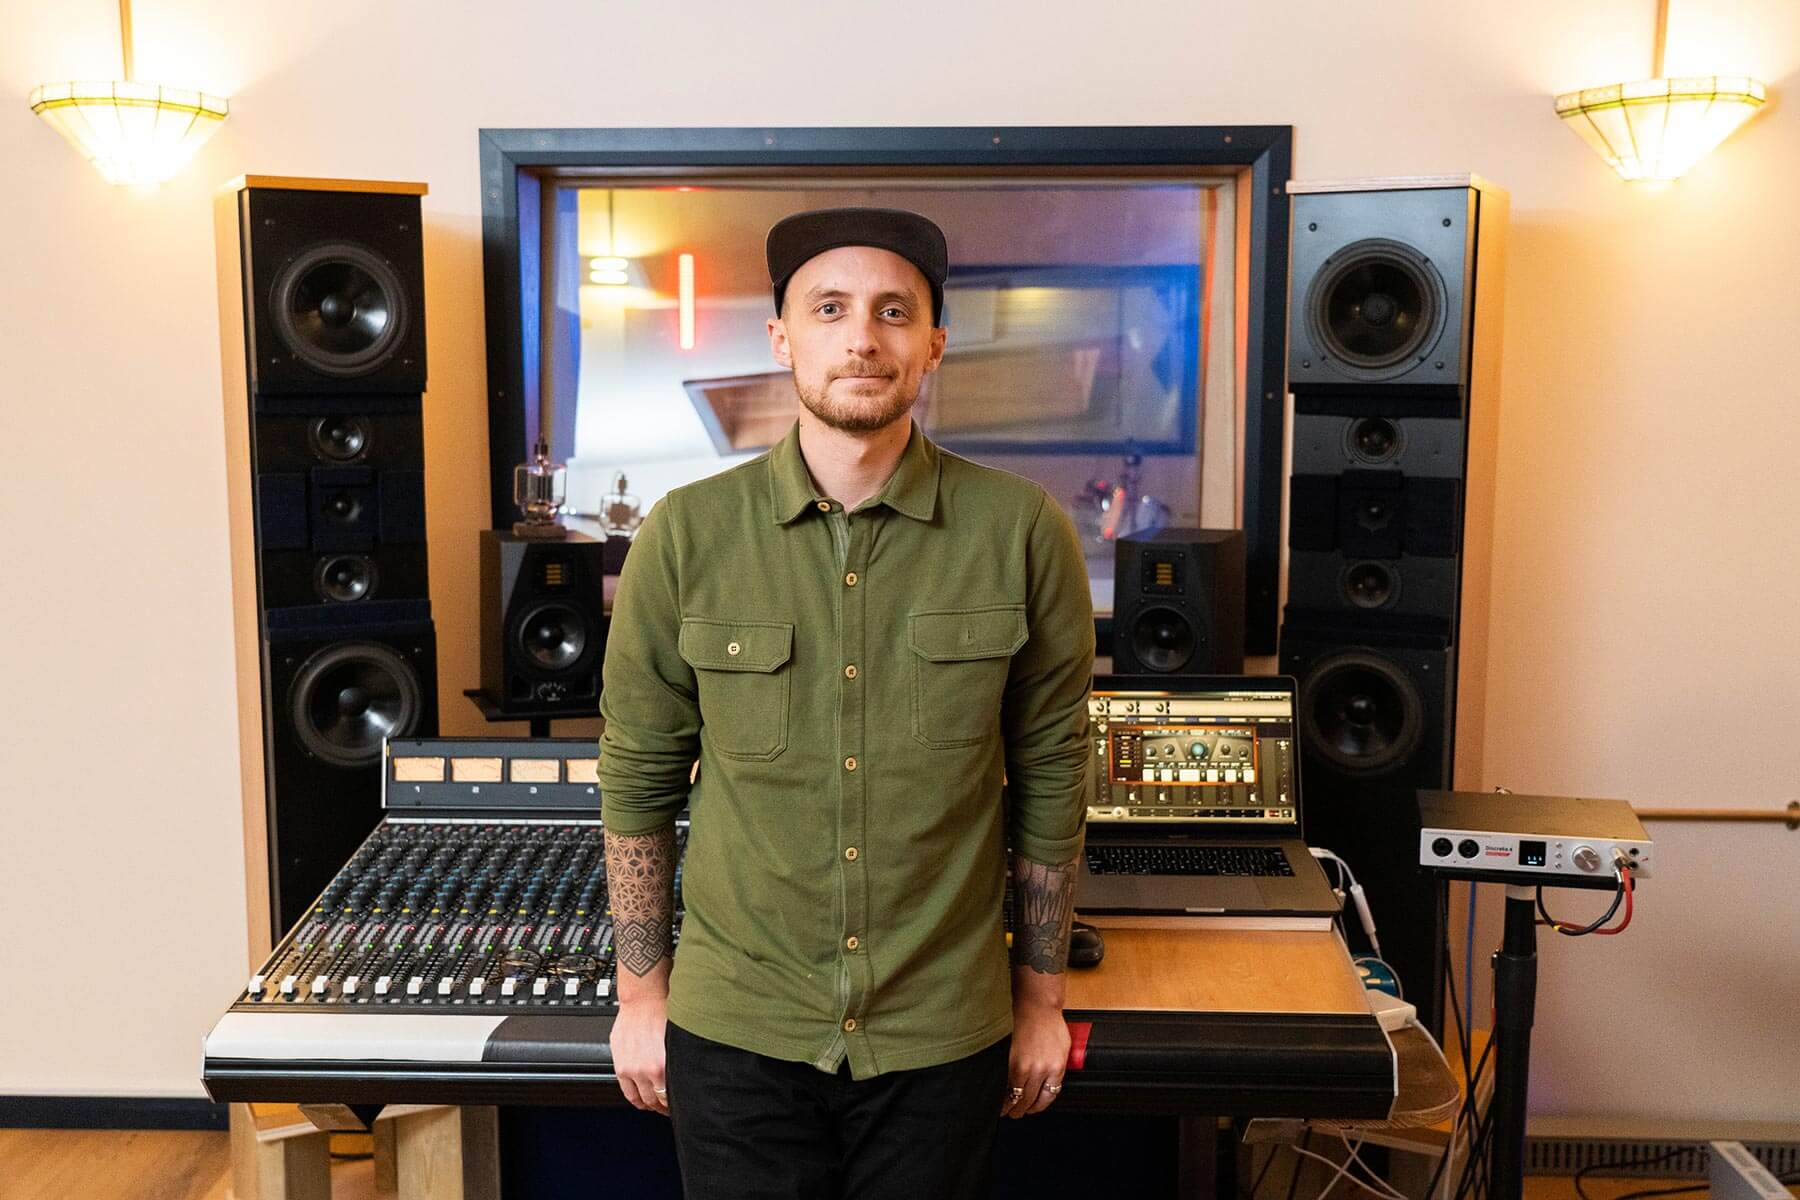 Producer Danny Trachtenberg Joins Forces With J Warner to Test the Discrete 4 Synergy Core and Edge Solo